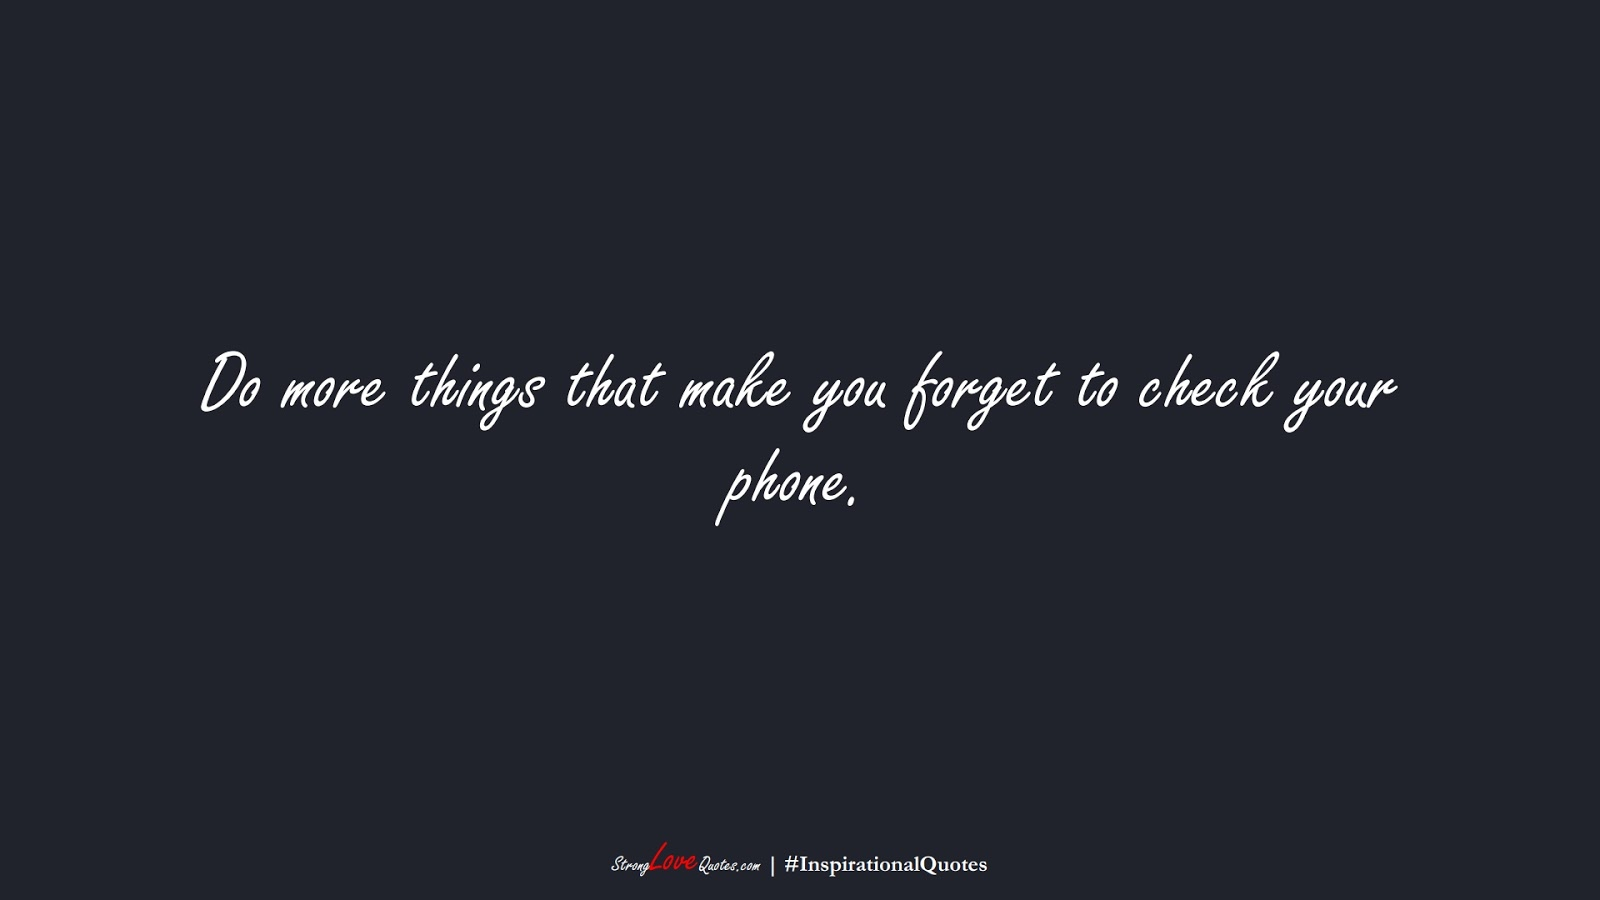 Do more things that make you forget to check your phone.FALSE